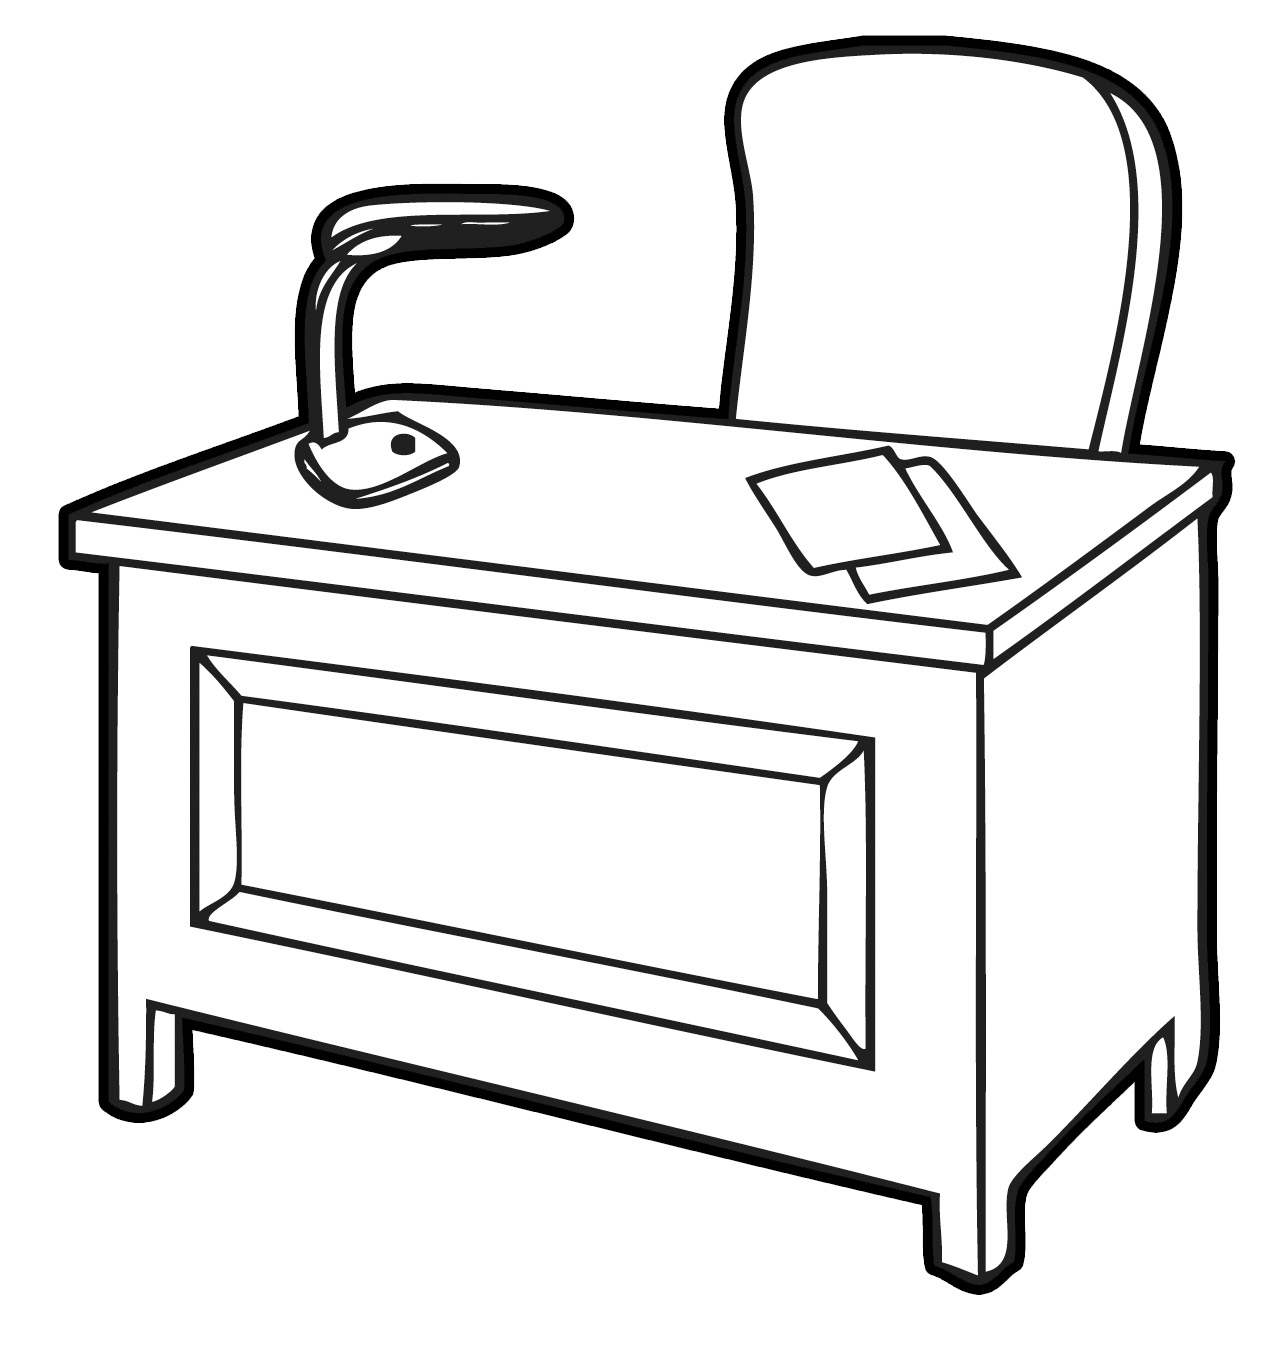 Desk clipart draw Office throughout clipart office images